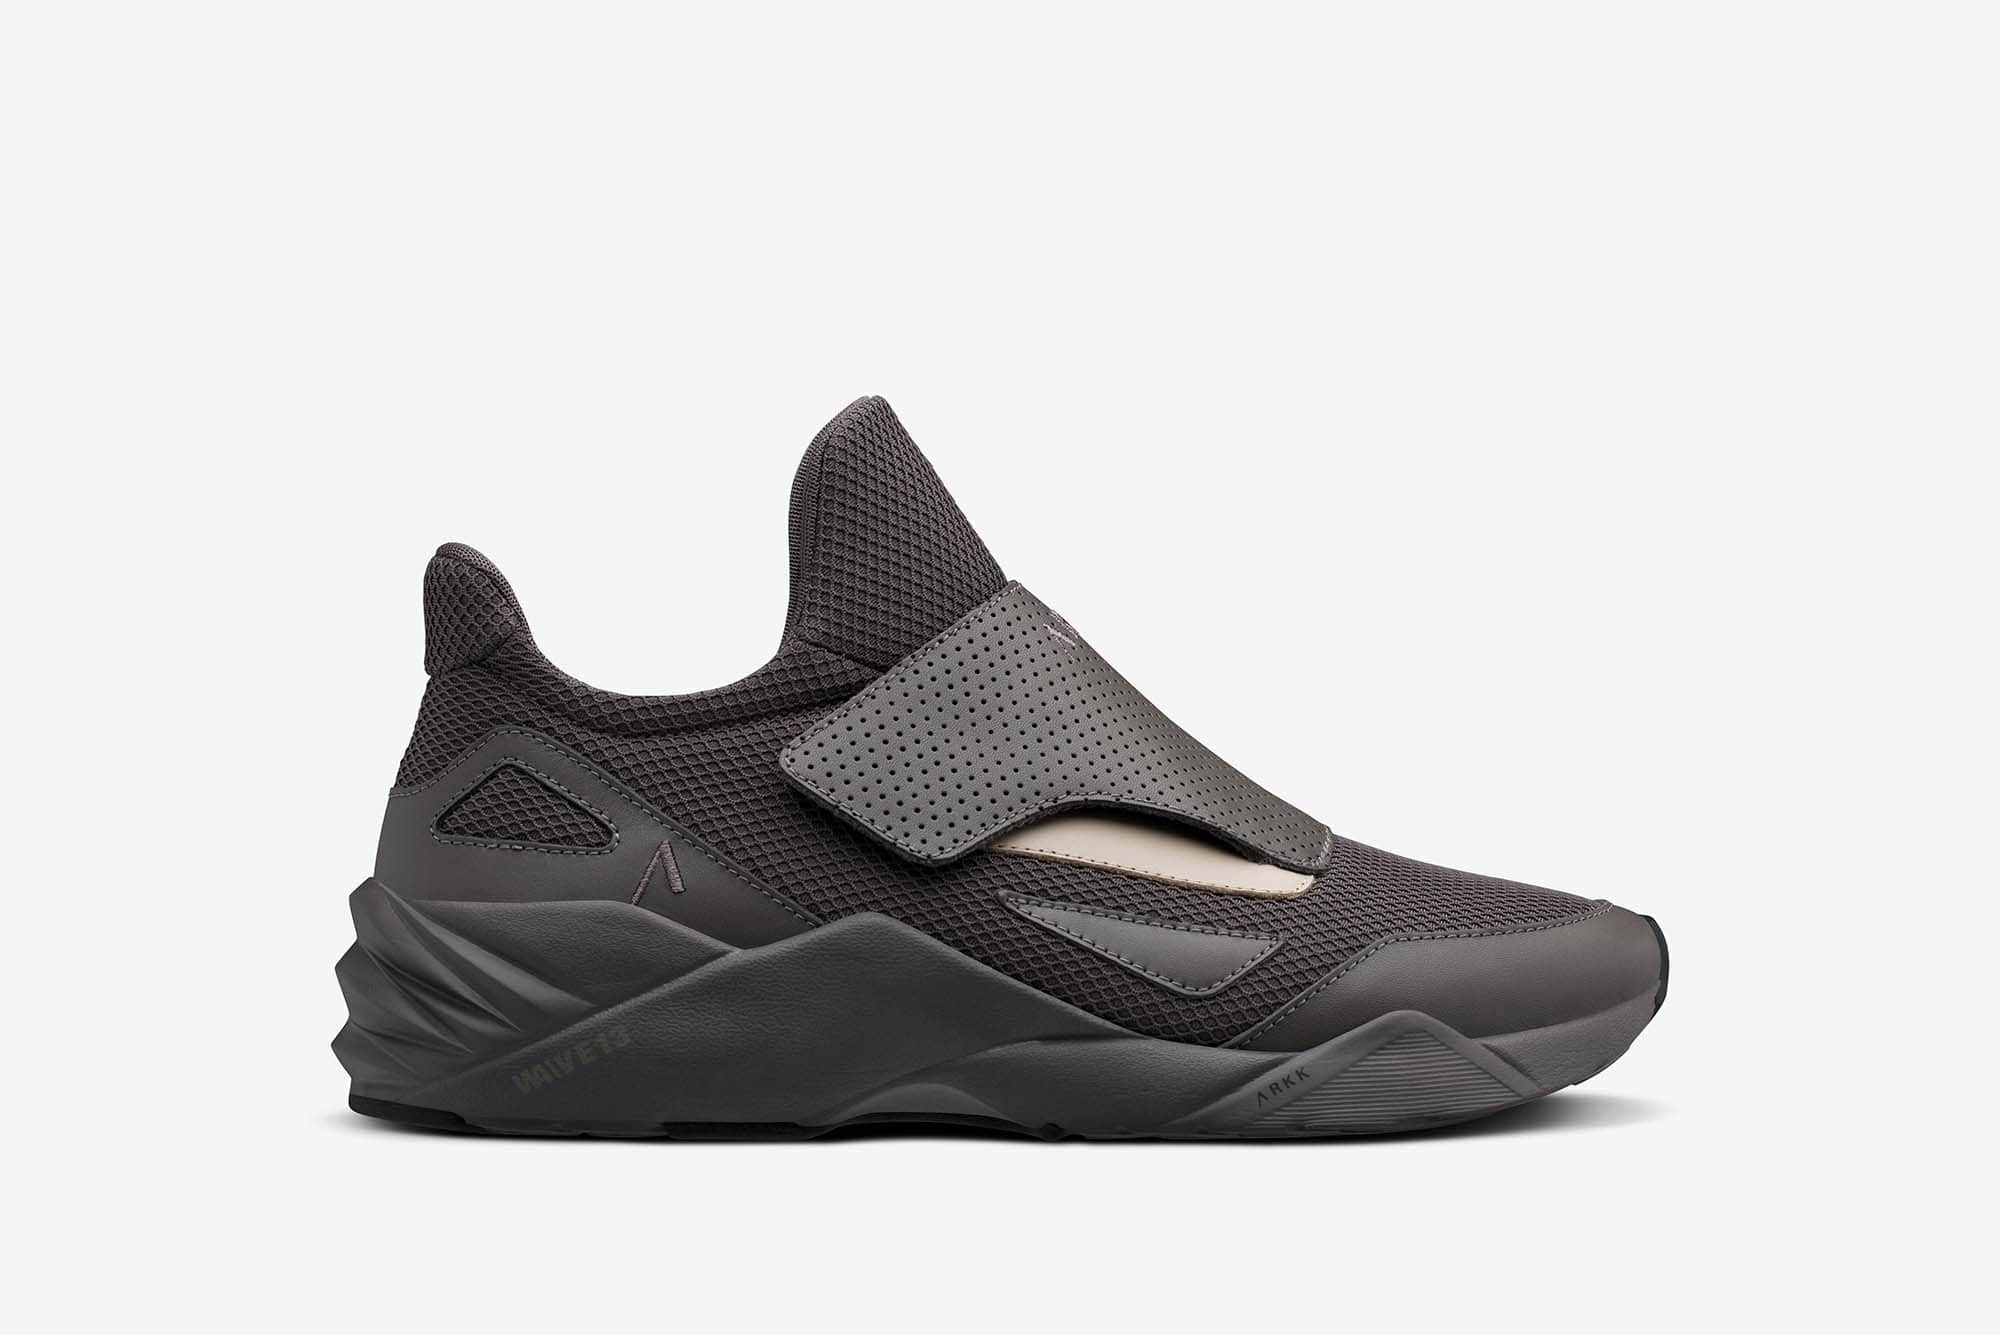 ARKK Copenhagen - Superior Line Apextron Mesh W13 Steel Grey Black-Women Apextron Steel Grey